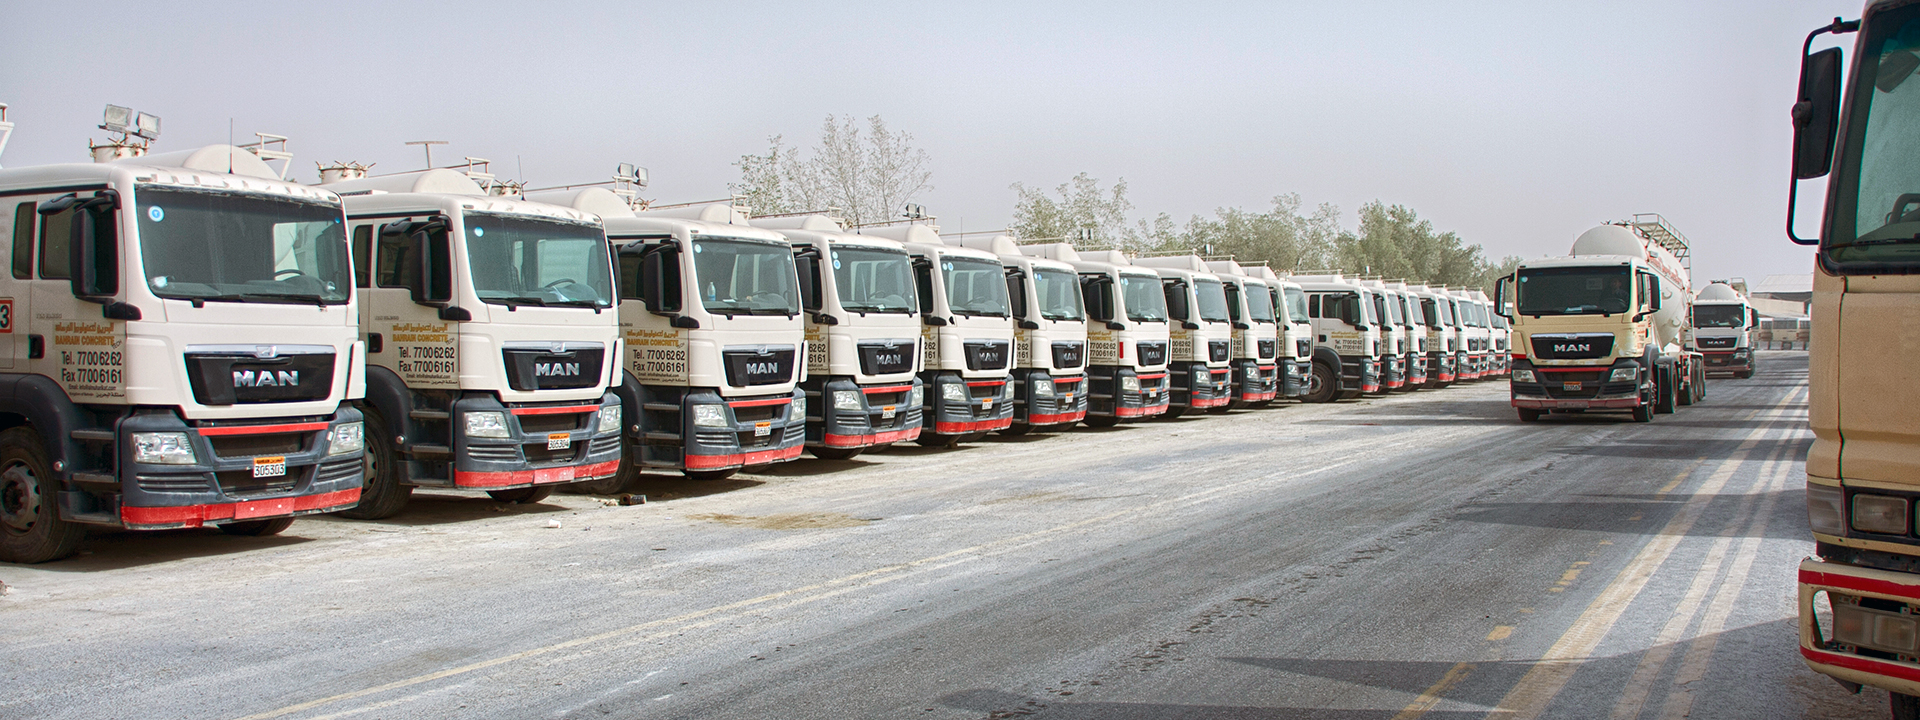 Many large trucks, parked in an organised fashion.